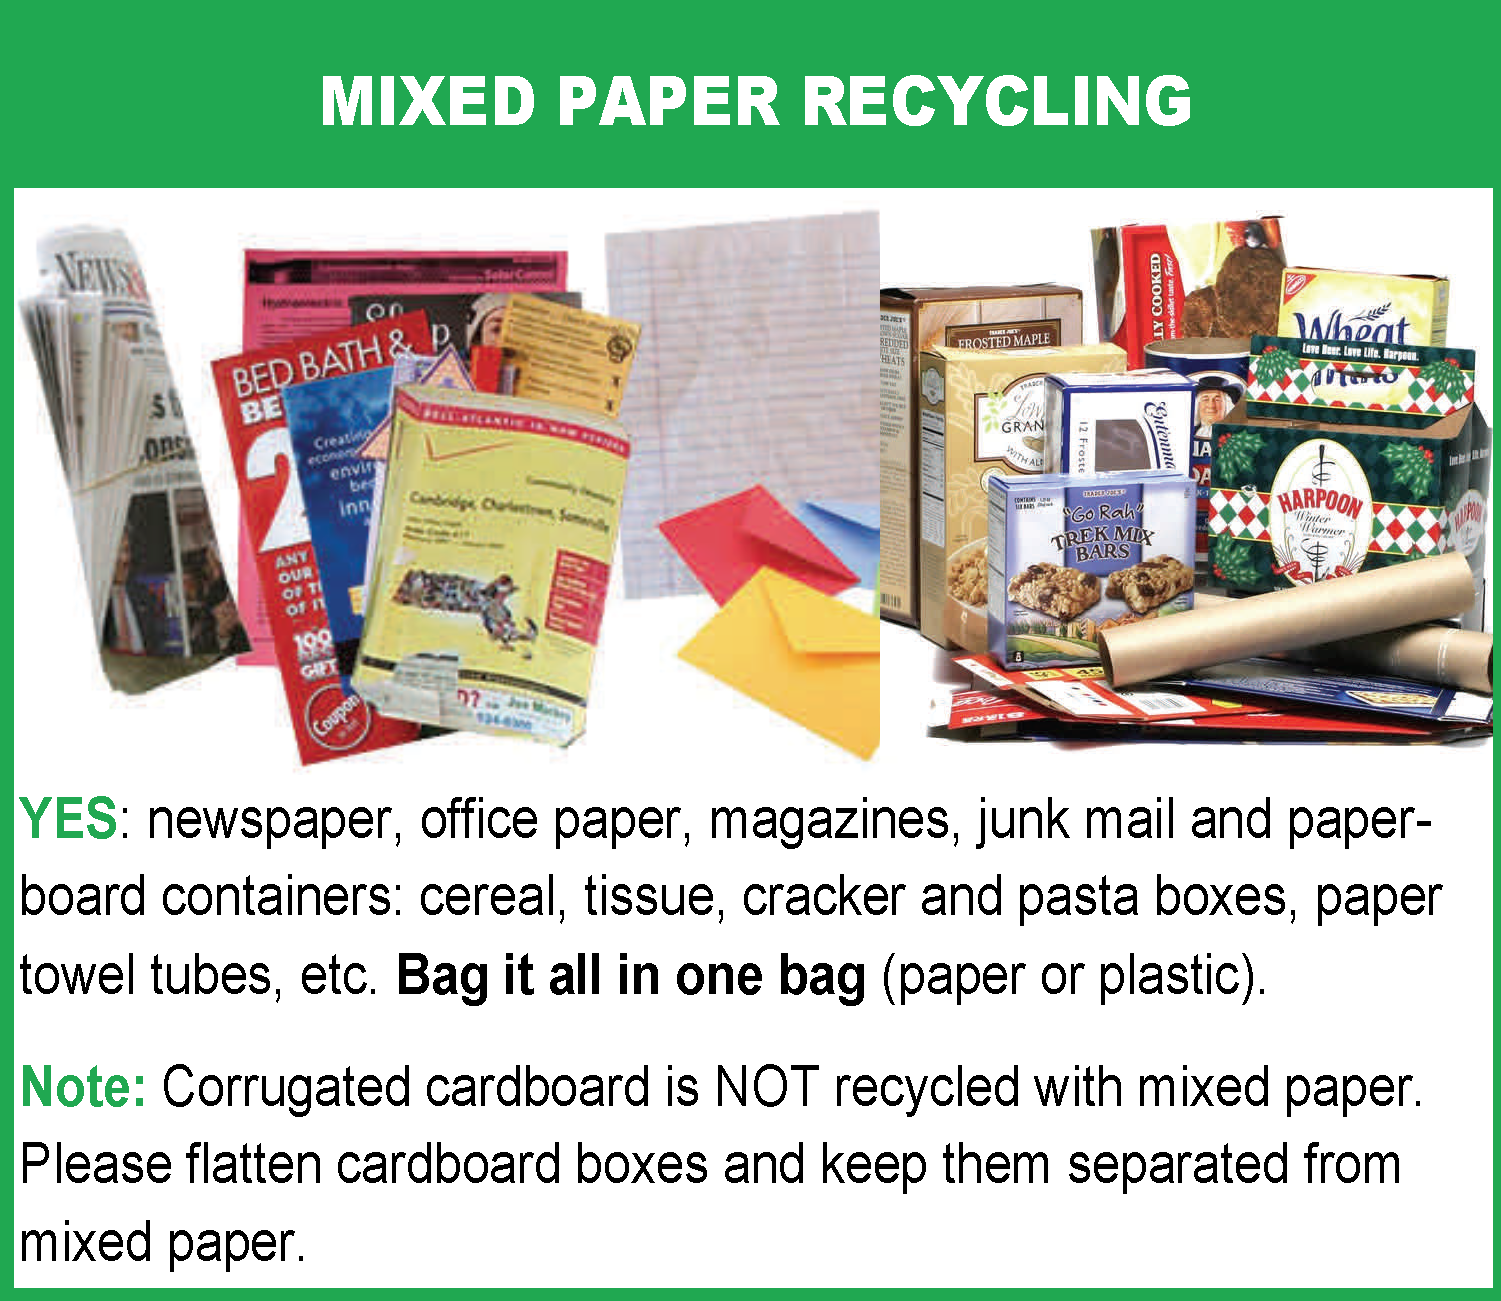 Q: Can you answer all my paper recycling questions? - Refuse